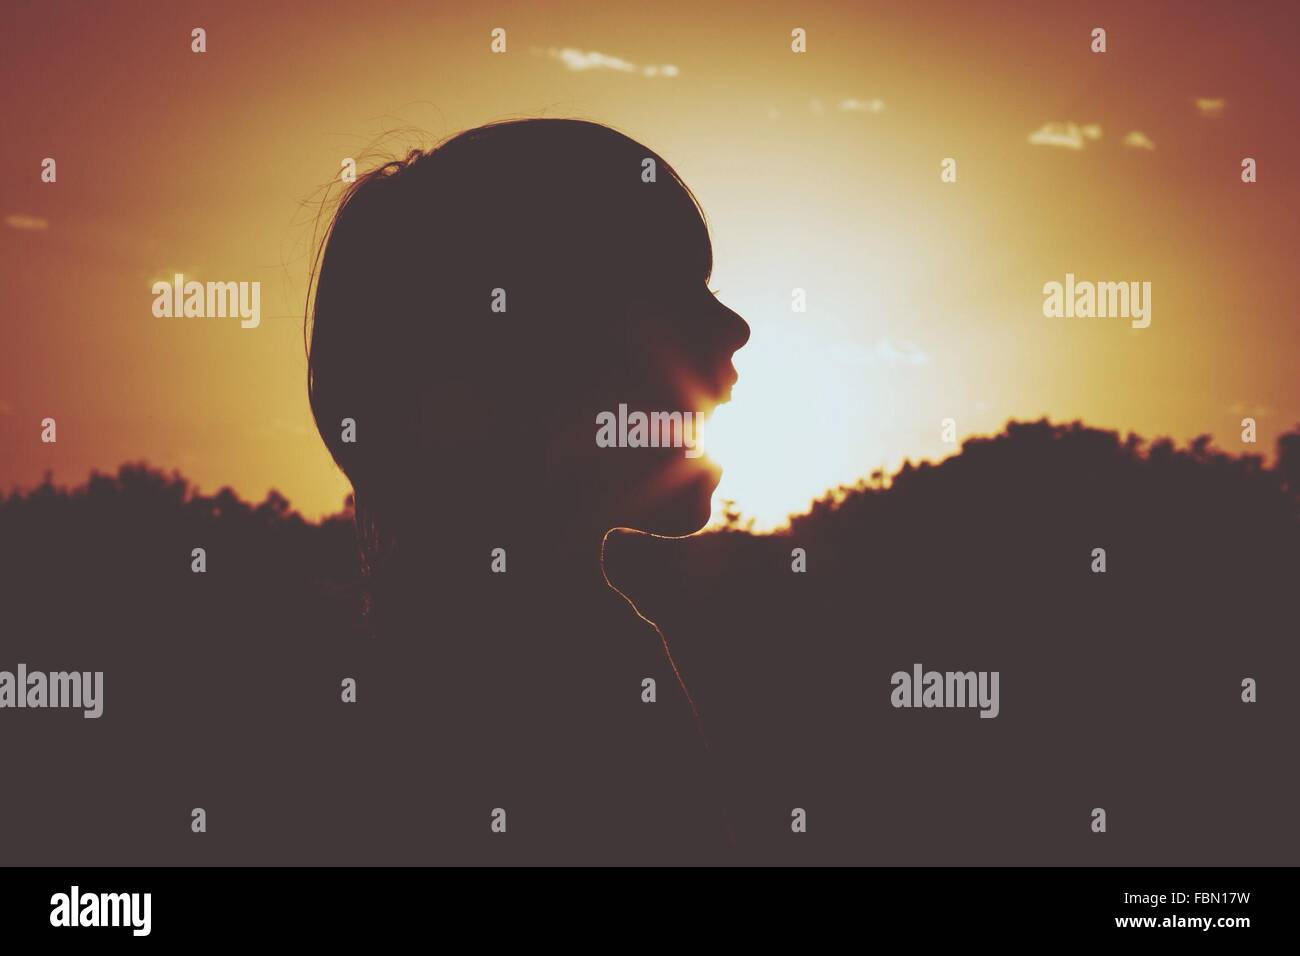 Optical Illusion Of Silhouette Boy Eating Sun At Sunset - Stock Image